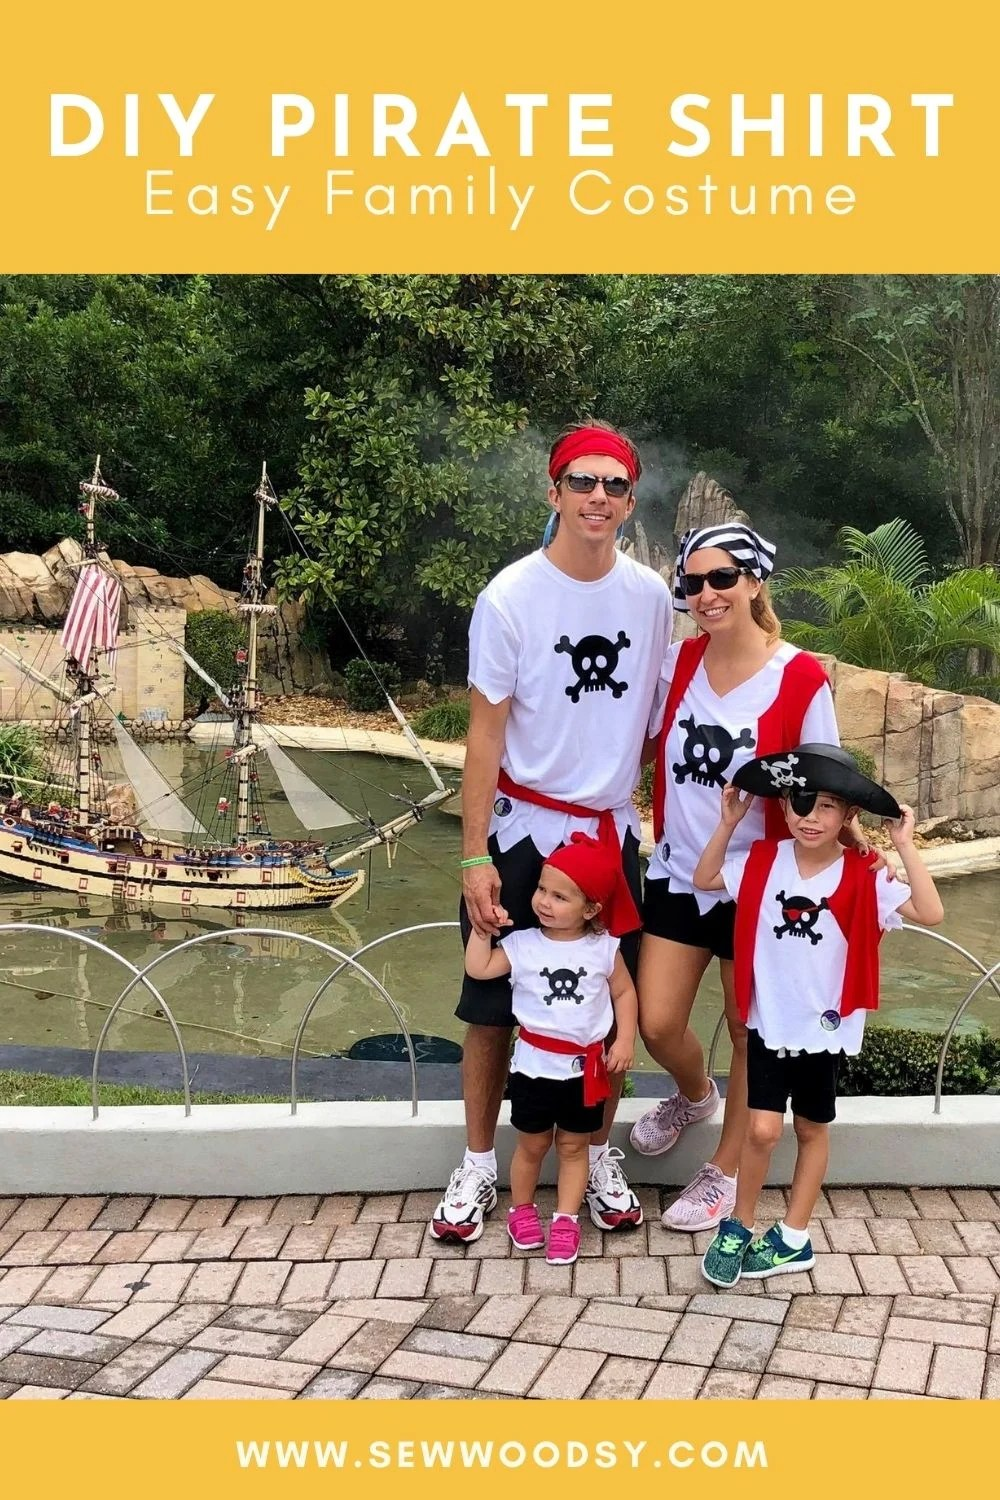 Family of four dressed in DIY Pirate Shirt costumes with text on image for Pinterest.